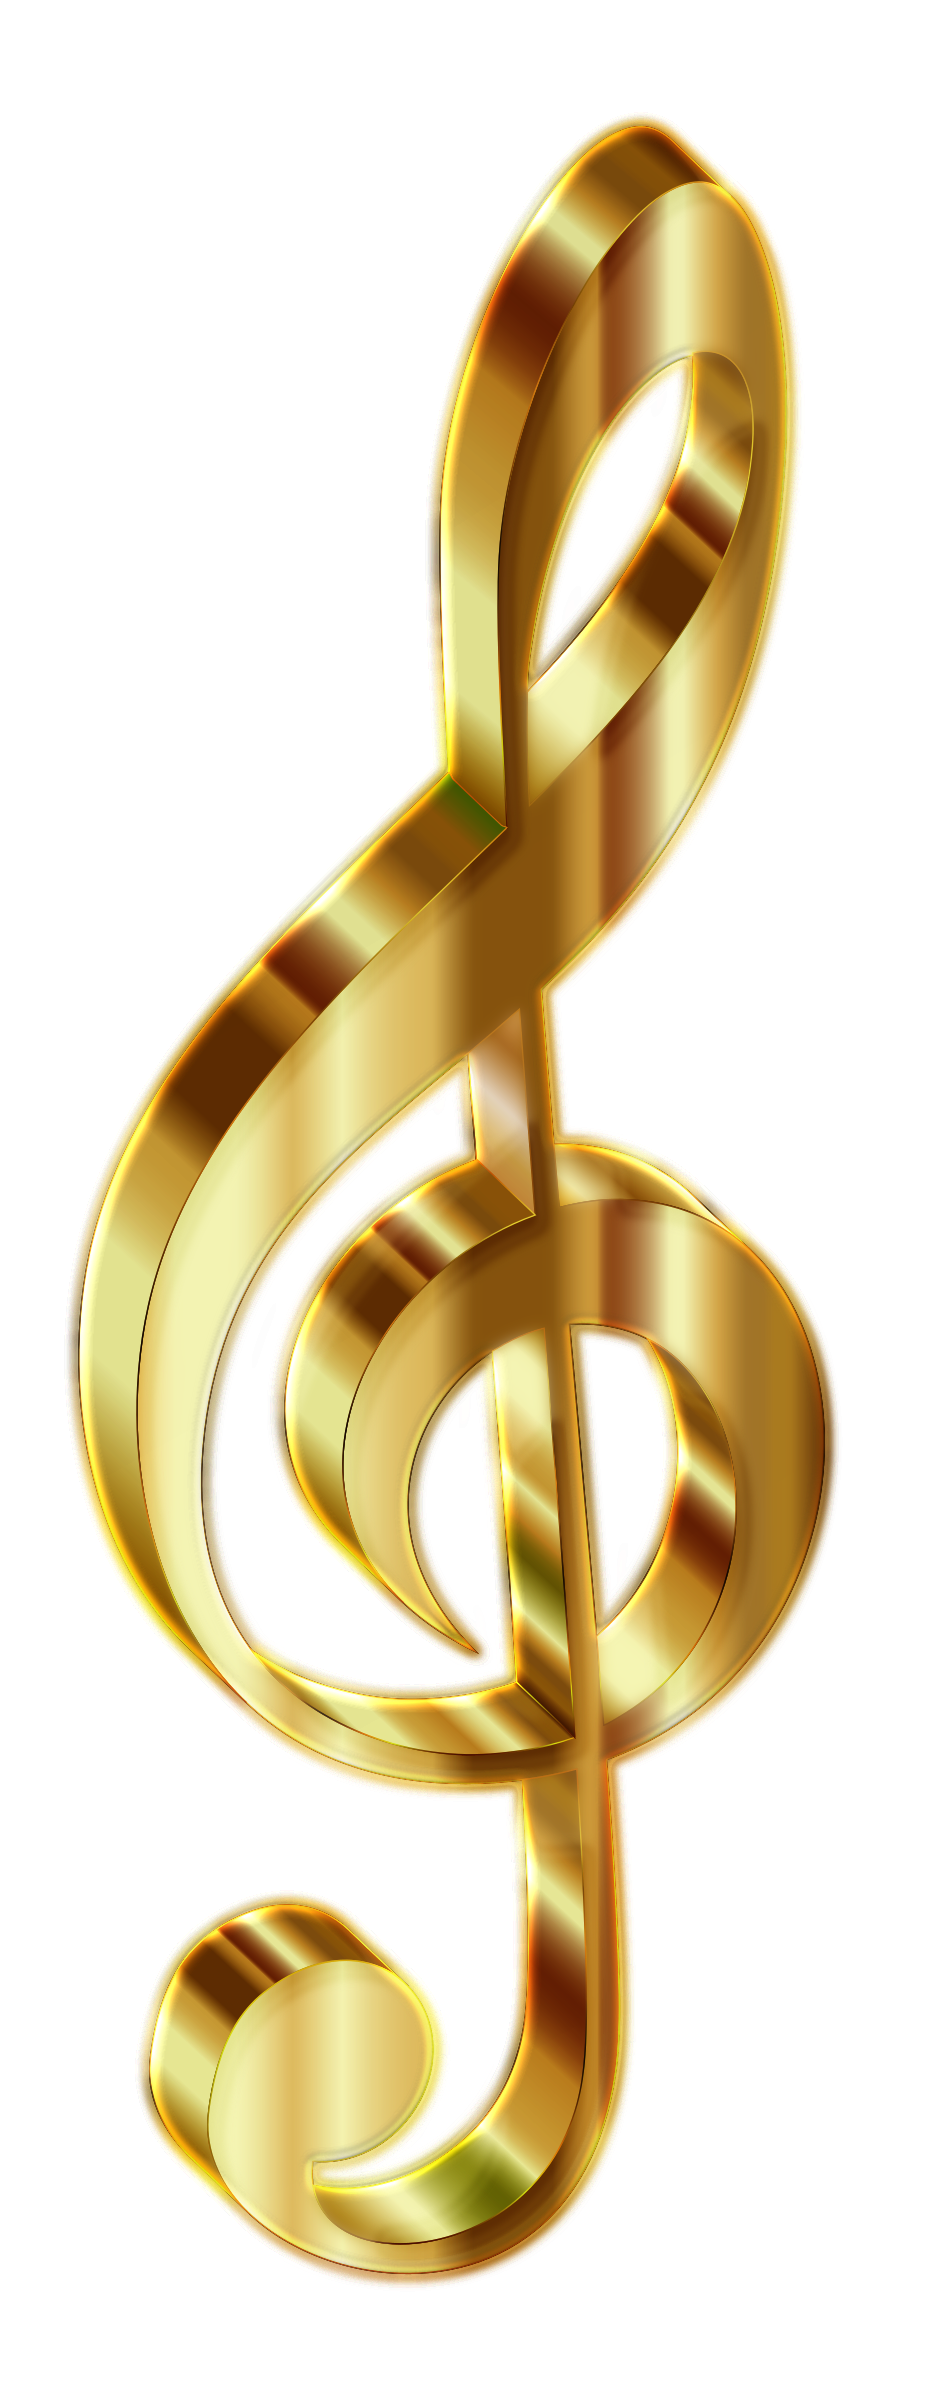 Golden music note png. Clipart gold d clef